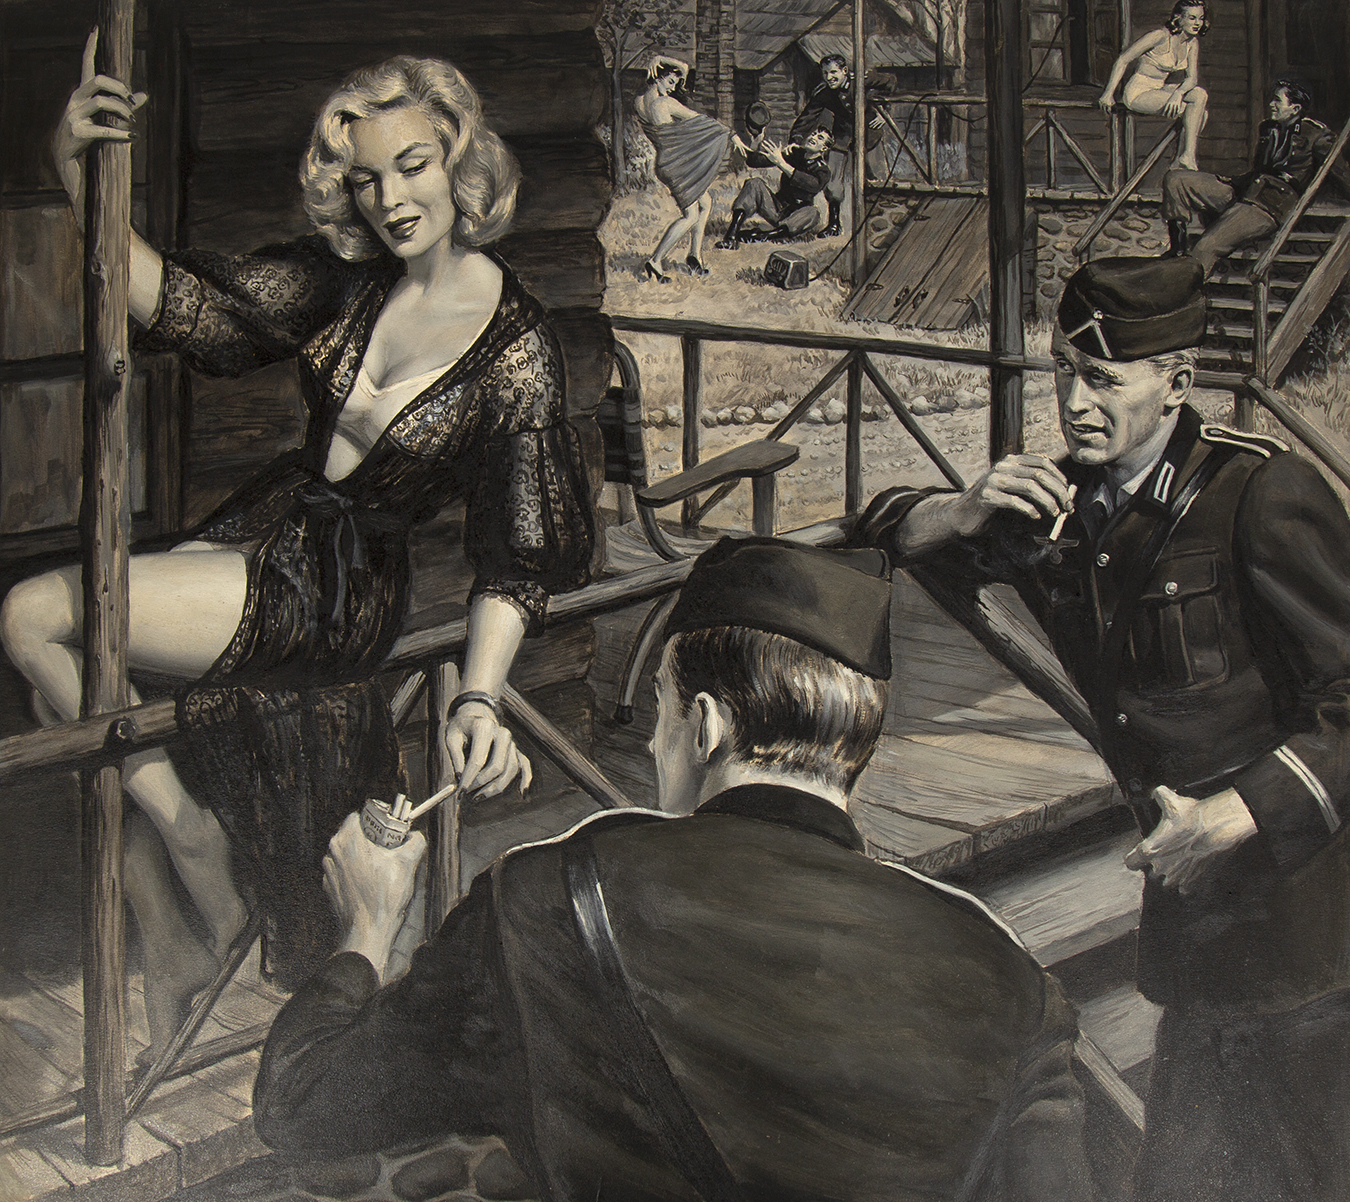 Gouache illustration by Samson Pollen titled Germany's Fräulein Camps